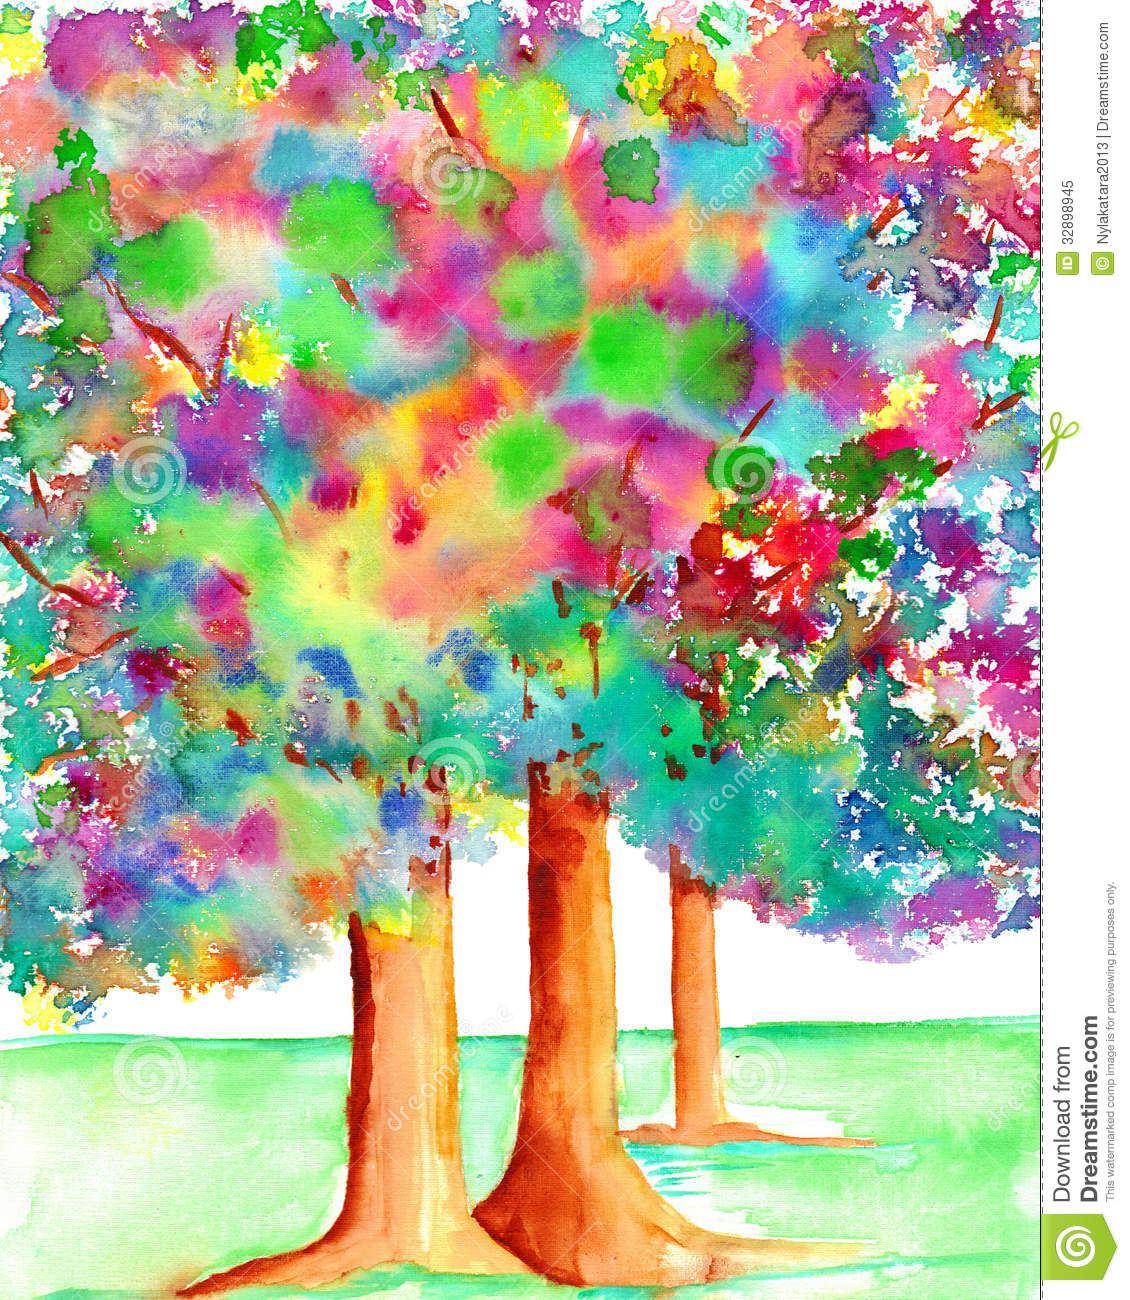 Trees With Illuminated Leaves Watercolor Painting Royalty Free Stock Photo Image 32898945